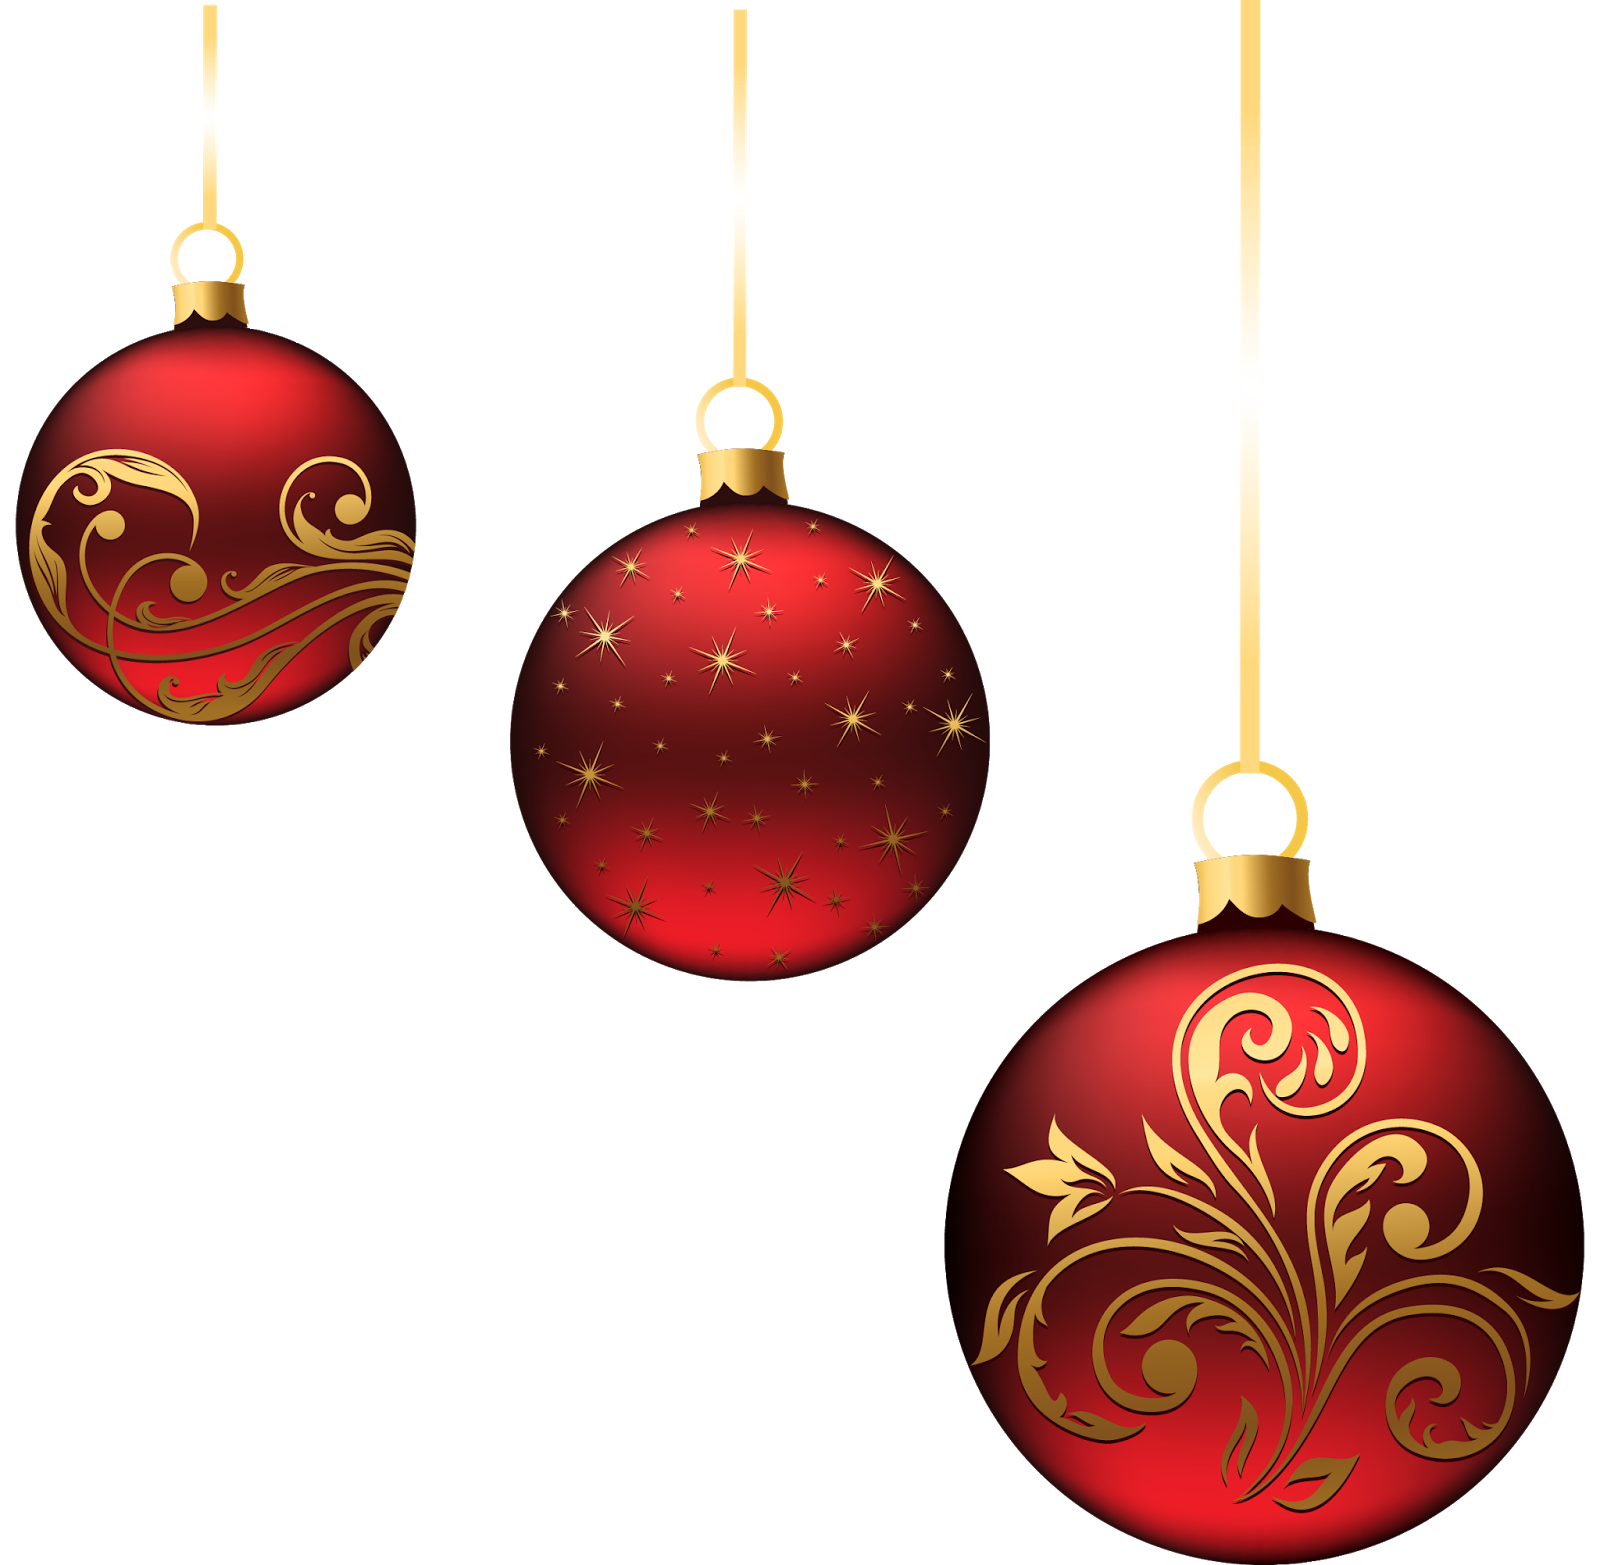 Transparent ornament. Christmas png images download